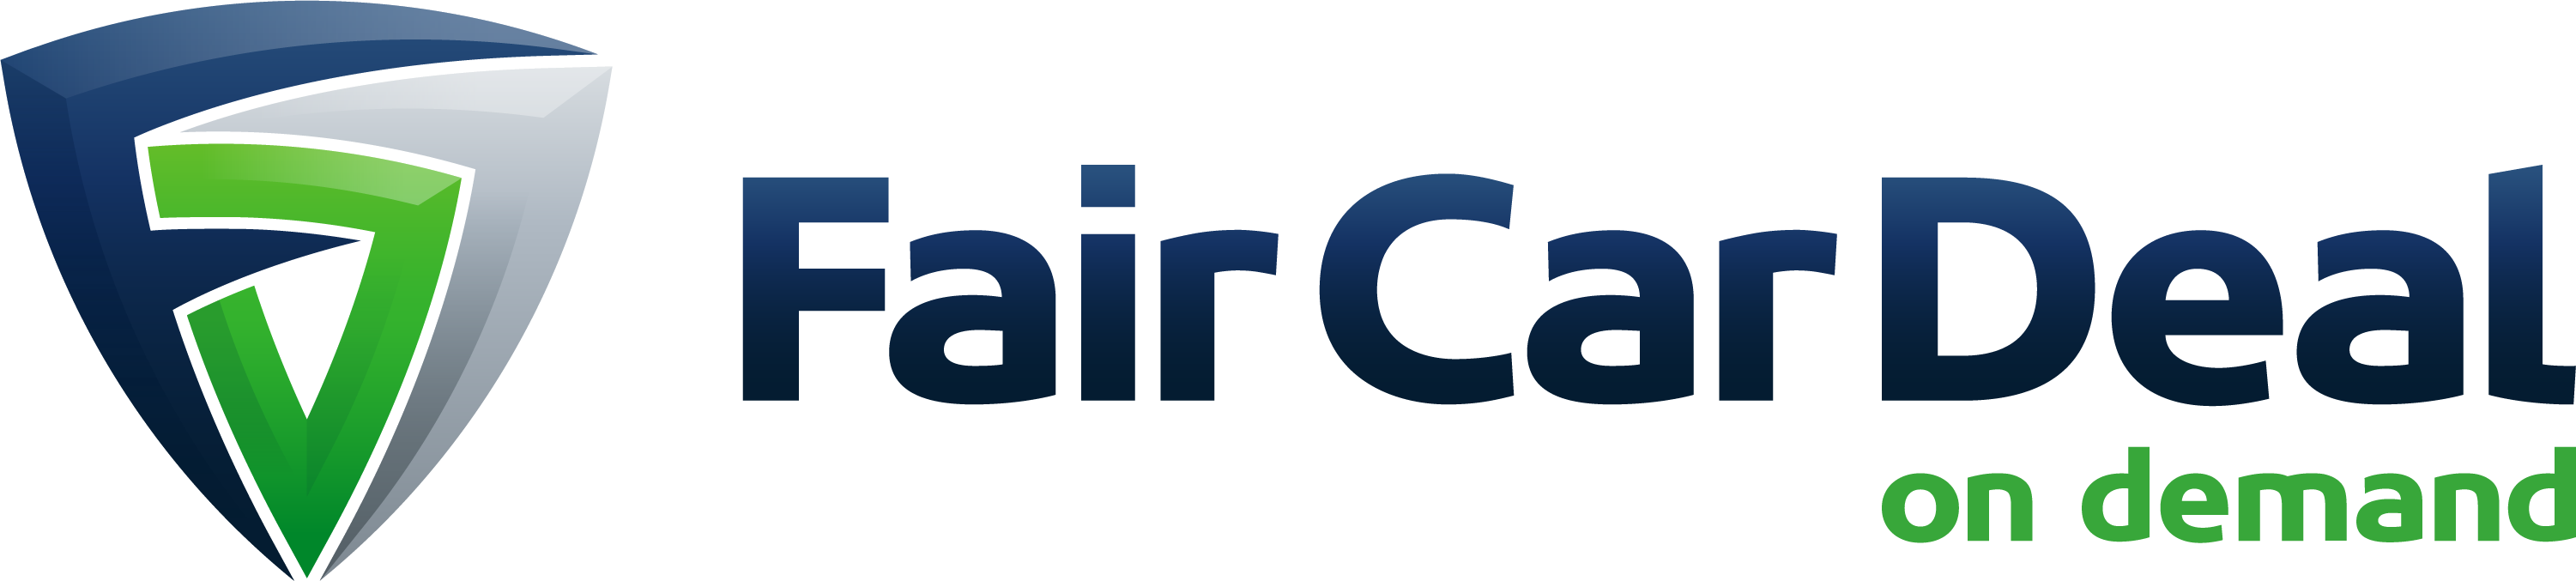 faircardeal on demand